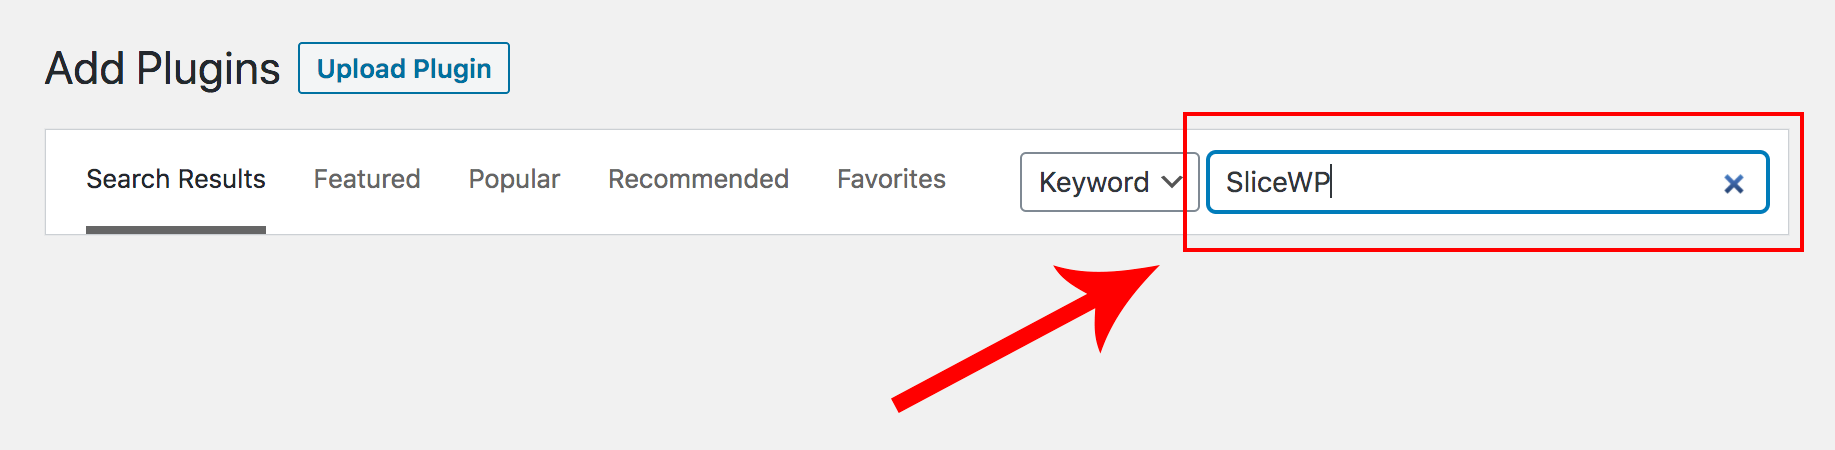 Searching for SliceWP when adding a new plugin in WordPress.